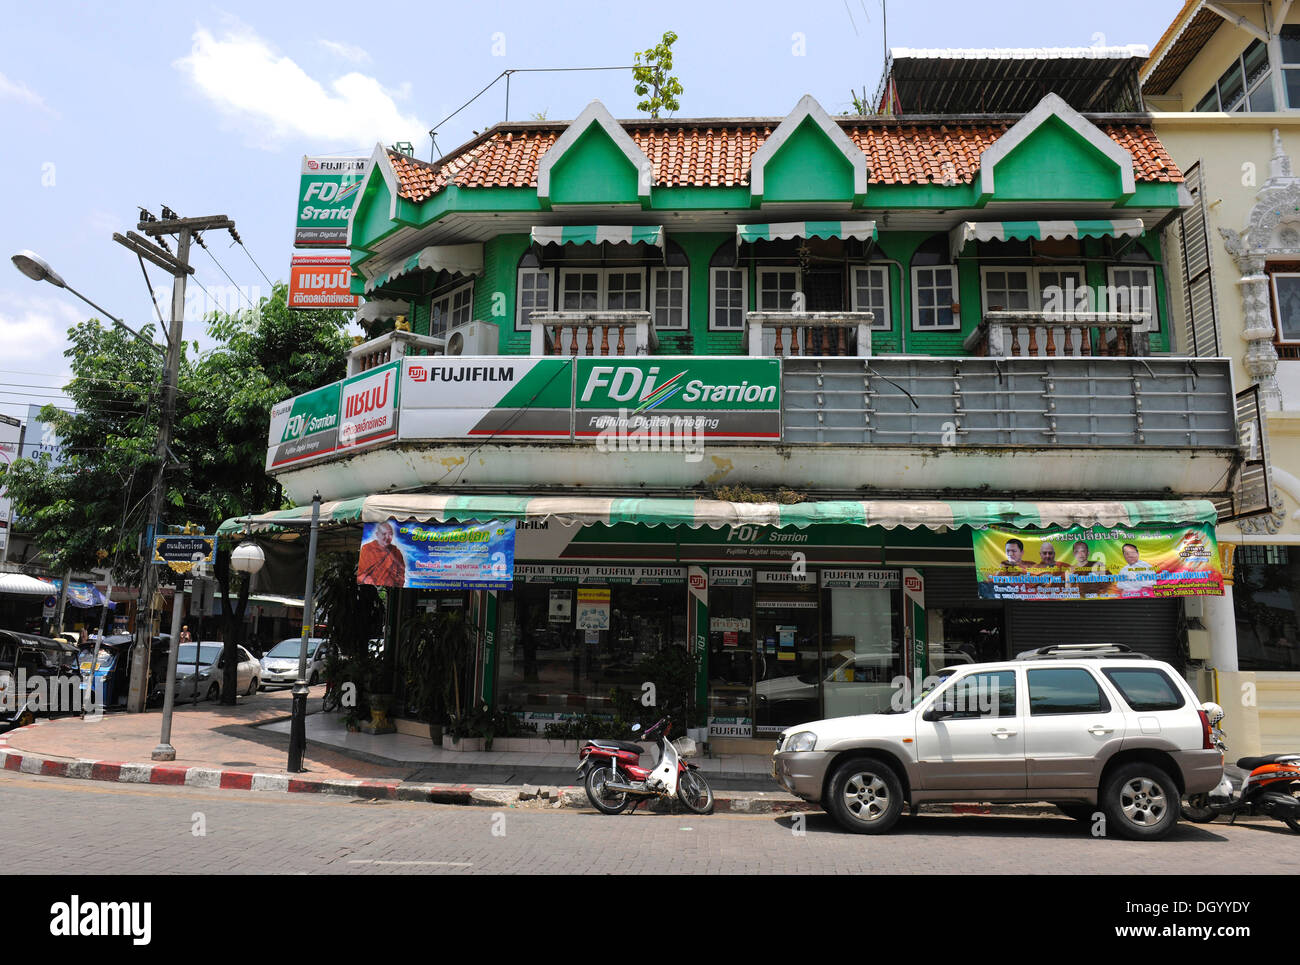 Fujifilm signage on a building in Chiang Mai, Thailand, Asia - Stock Image